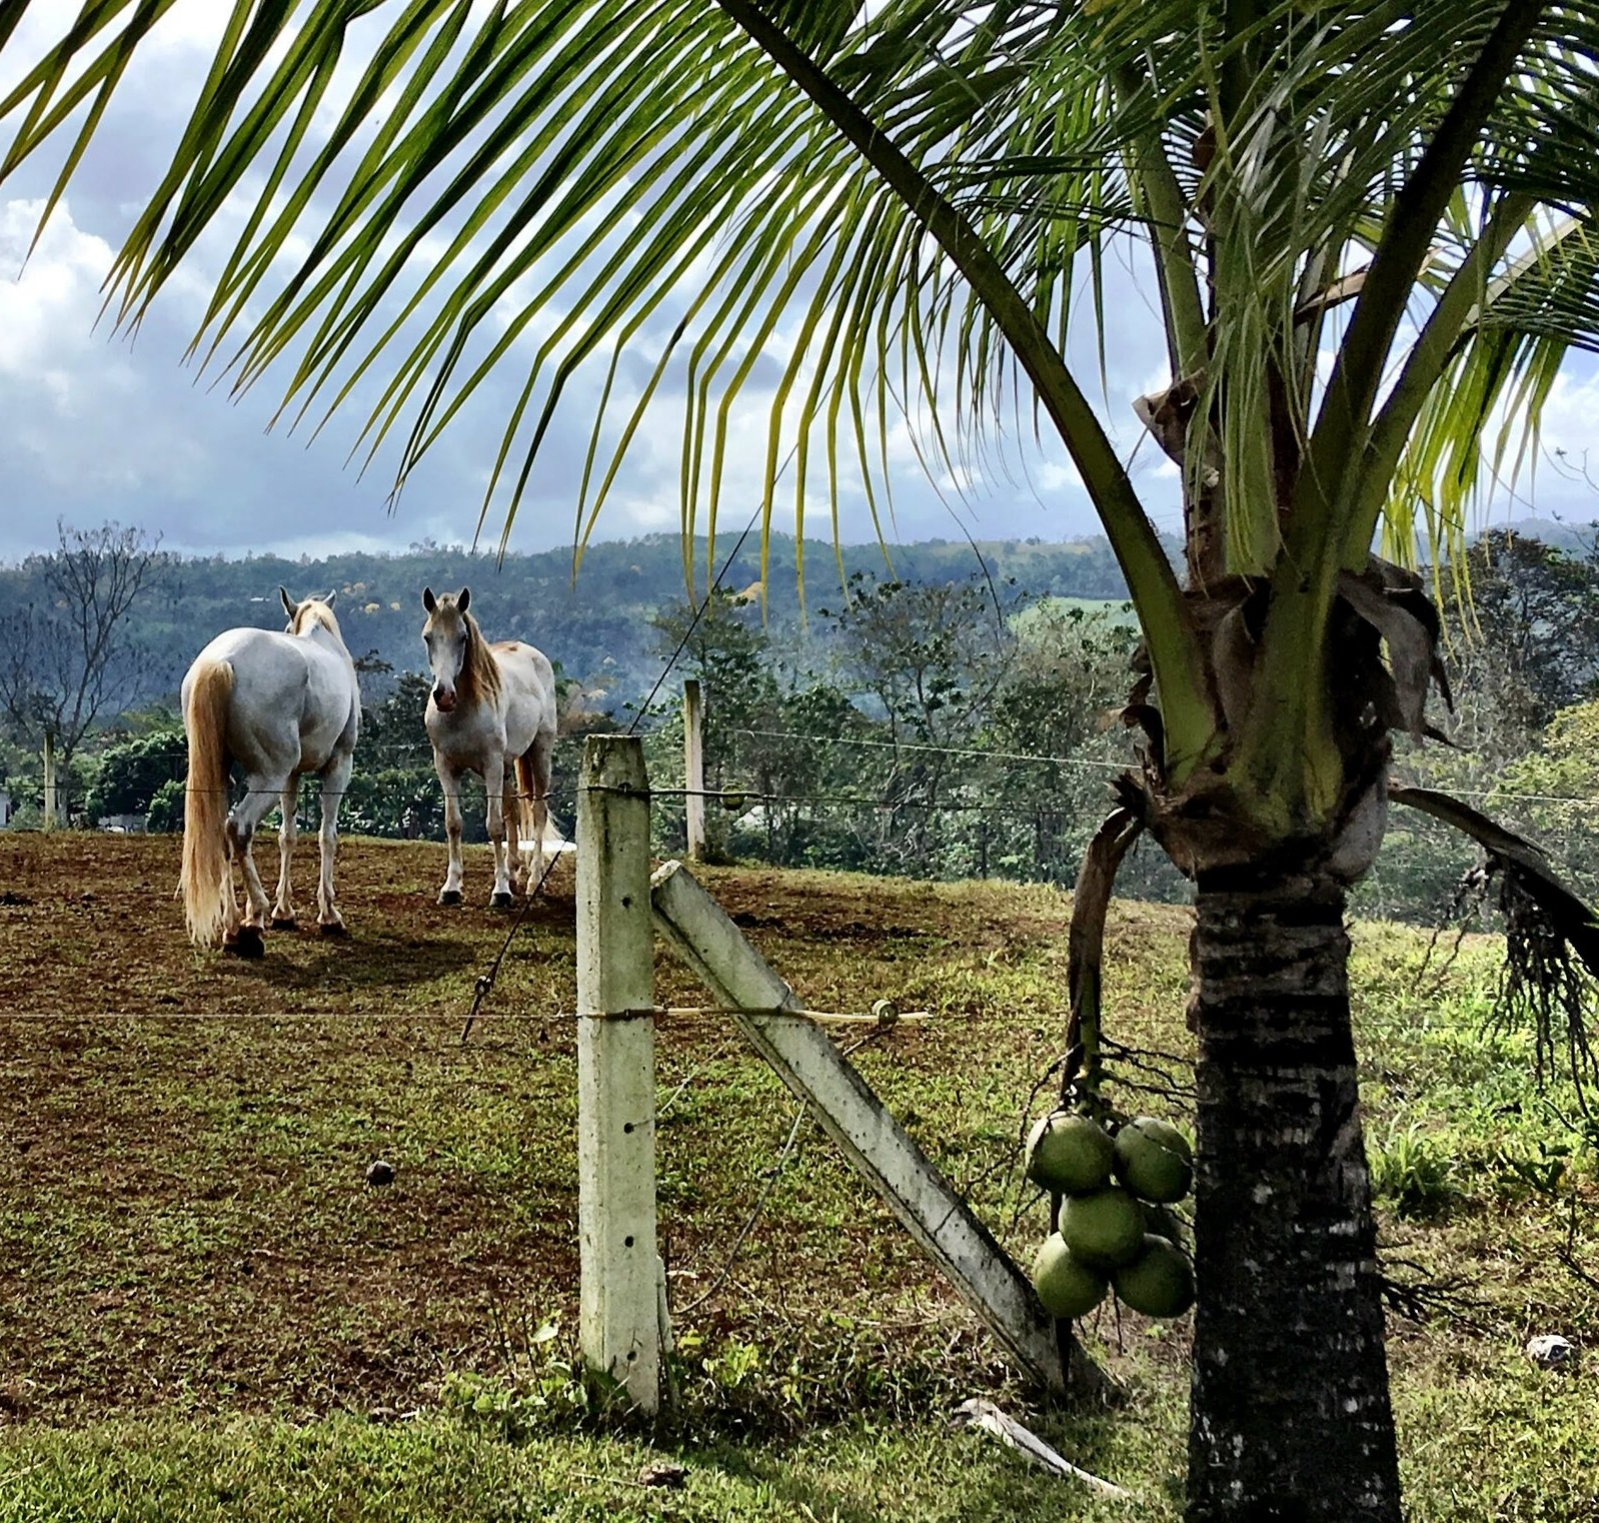 The Dreamcatchers offer blind itinerary adventure trips in Costa Rica